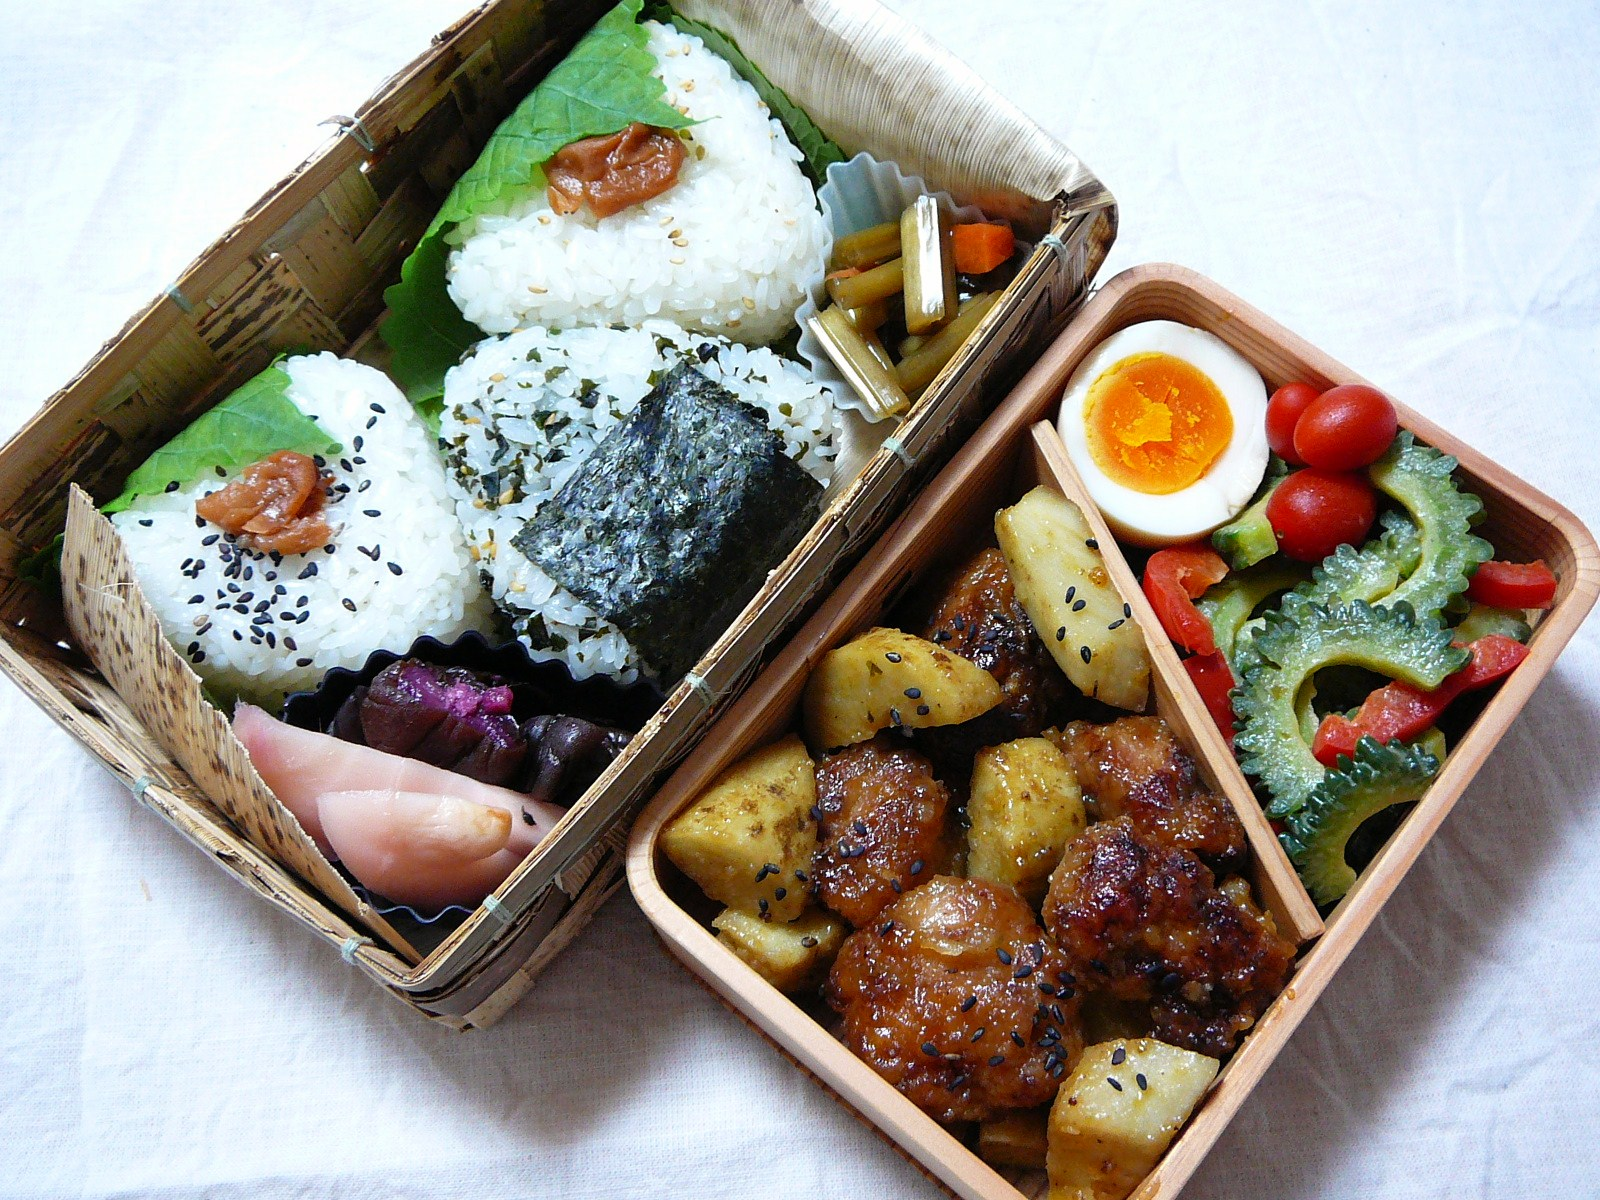 today s bento lunch box 12 29 karaage and burdock bento. Black Bedroom Furniture Sets. Home Design Ideas